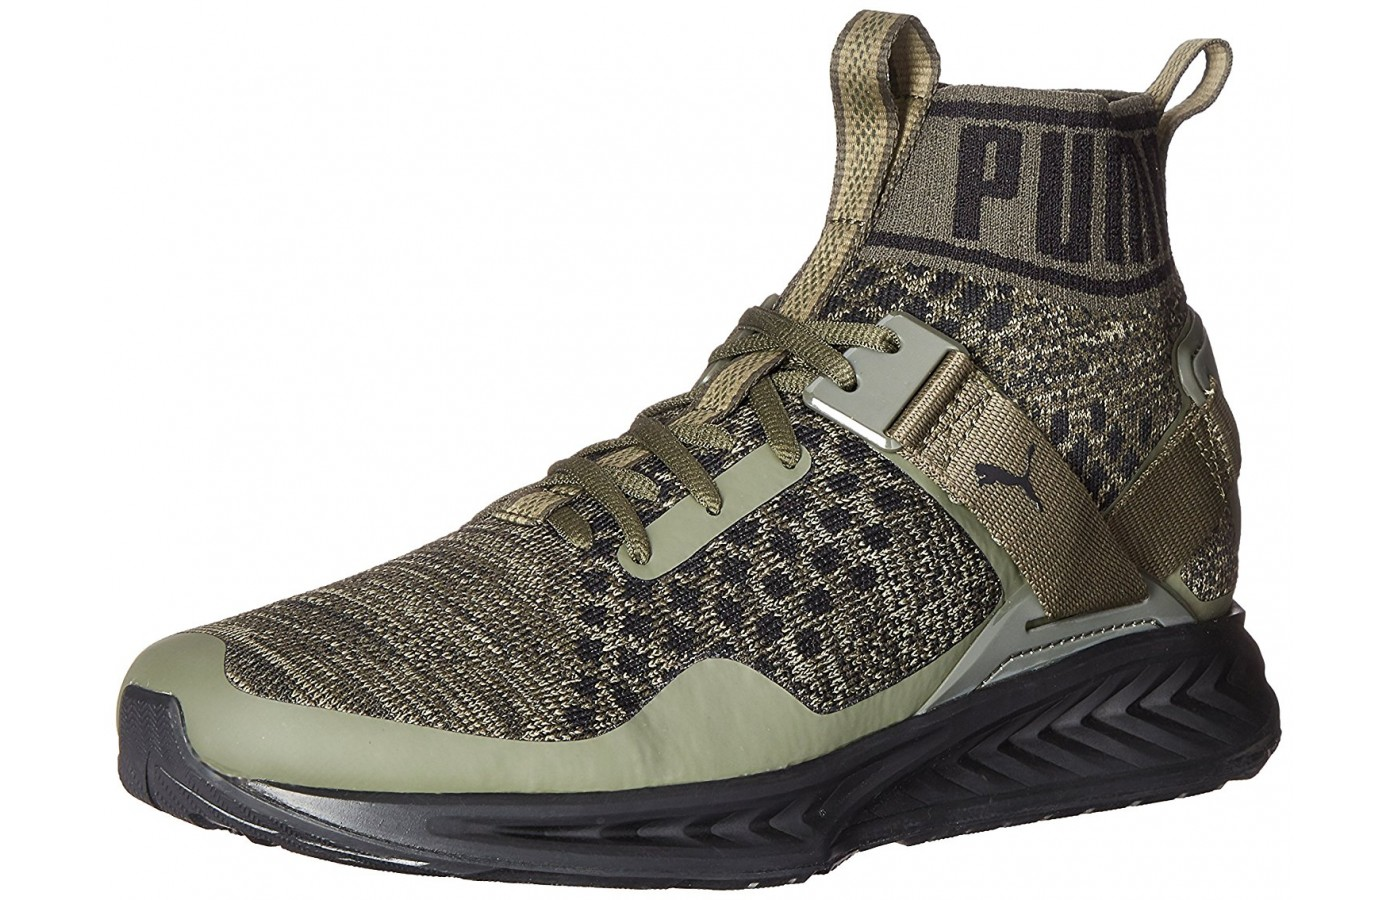 cdb8529f64d3 Puma Ignite EvoKnit Tested for Performance in 2019